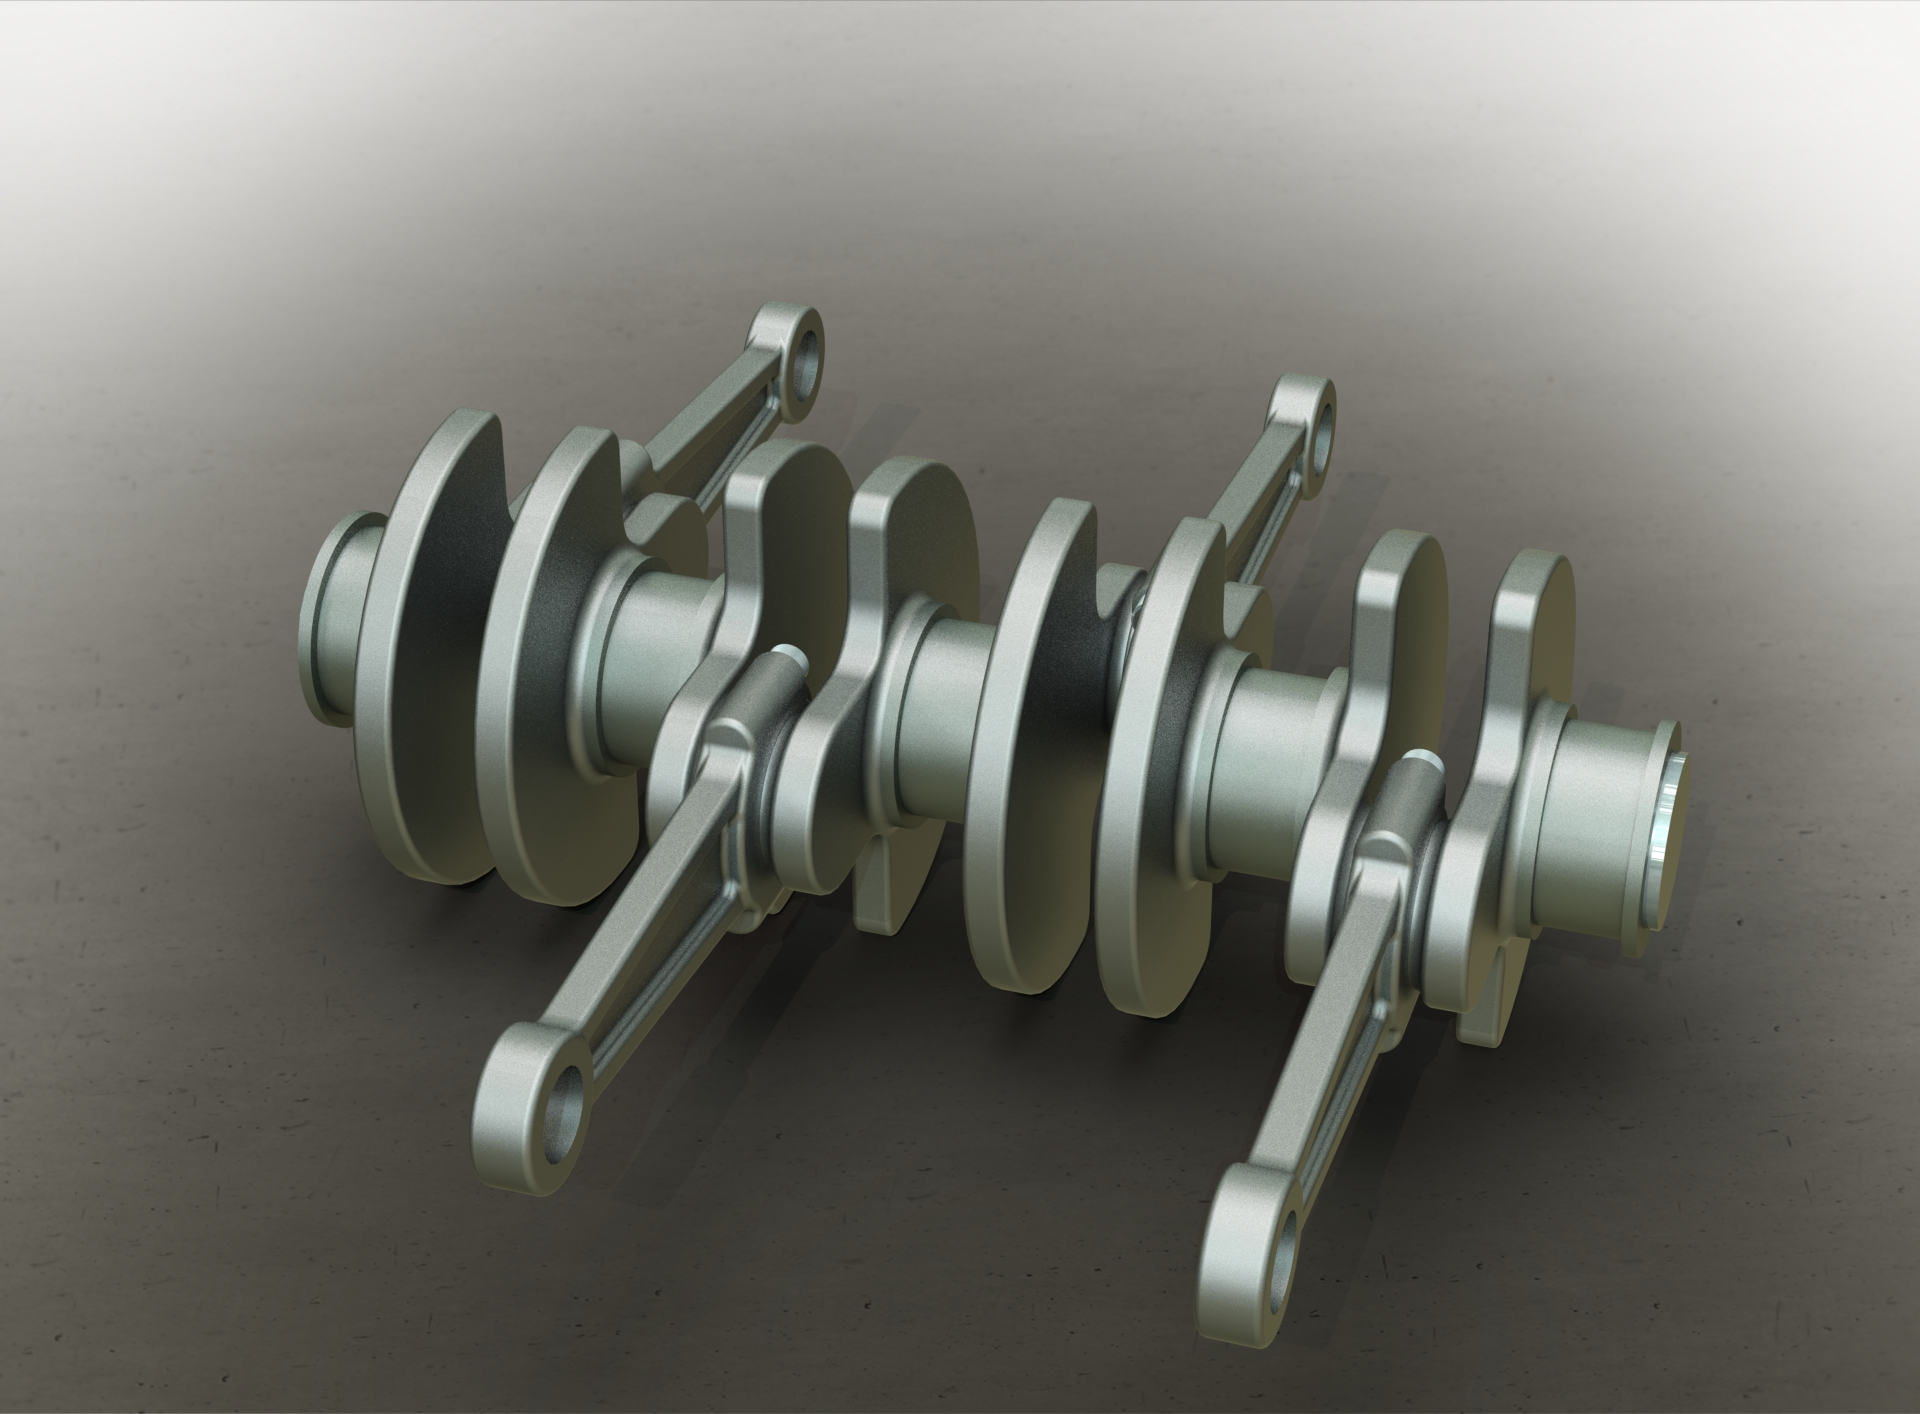 Connecting Rod H Profile 3d Model Race Engine Connecting Rod For Super together with SolidWorks Connecting Rod together with Crankshaft And Connecting Rod in addition Fordson Model F Tractor besides Slider Crank Mechanism. on engine connecting rod solidworks